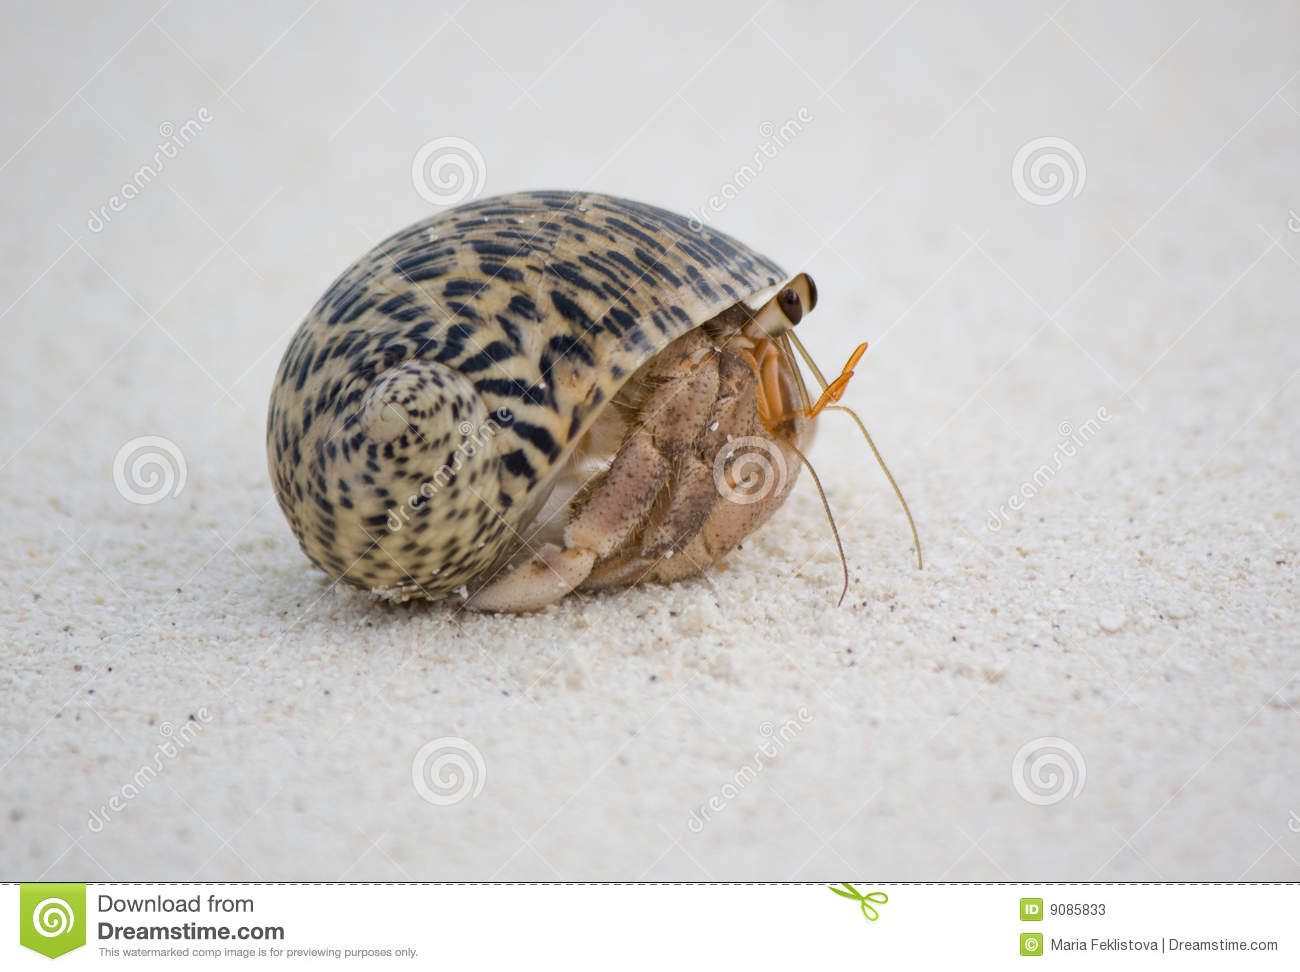 how to clean hermit crab sand